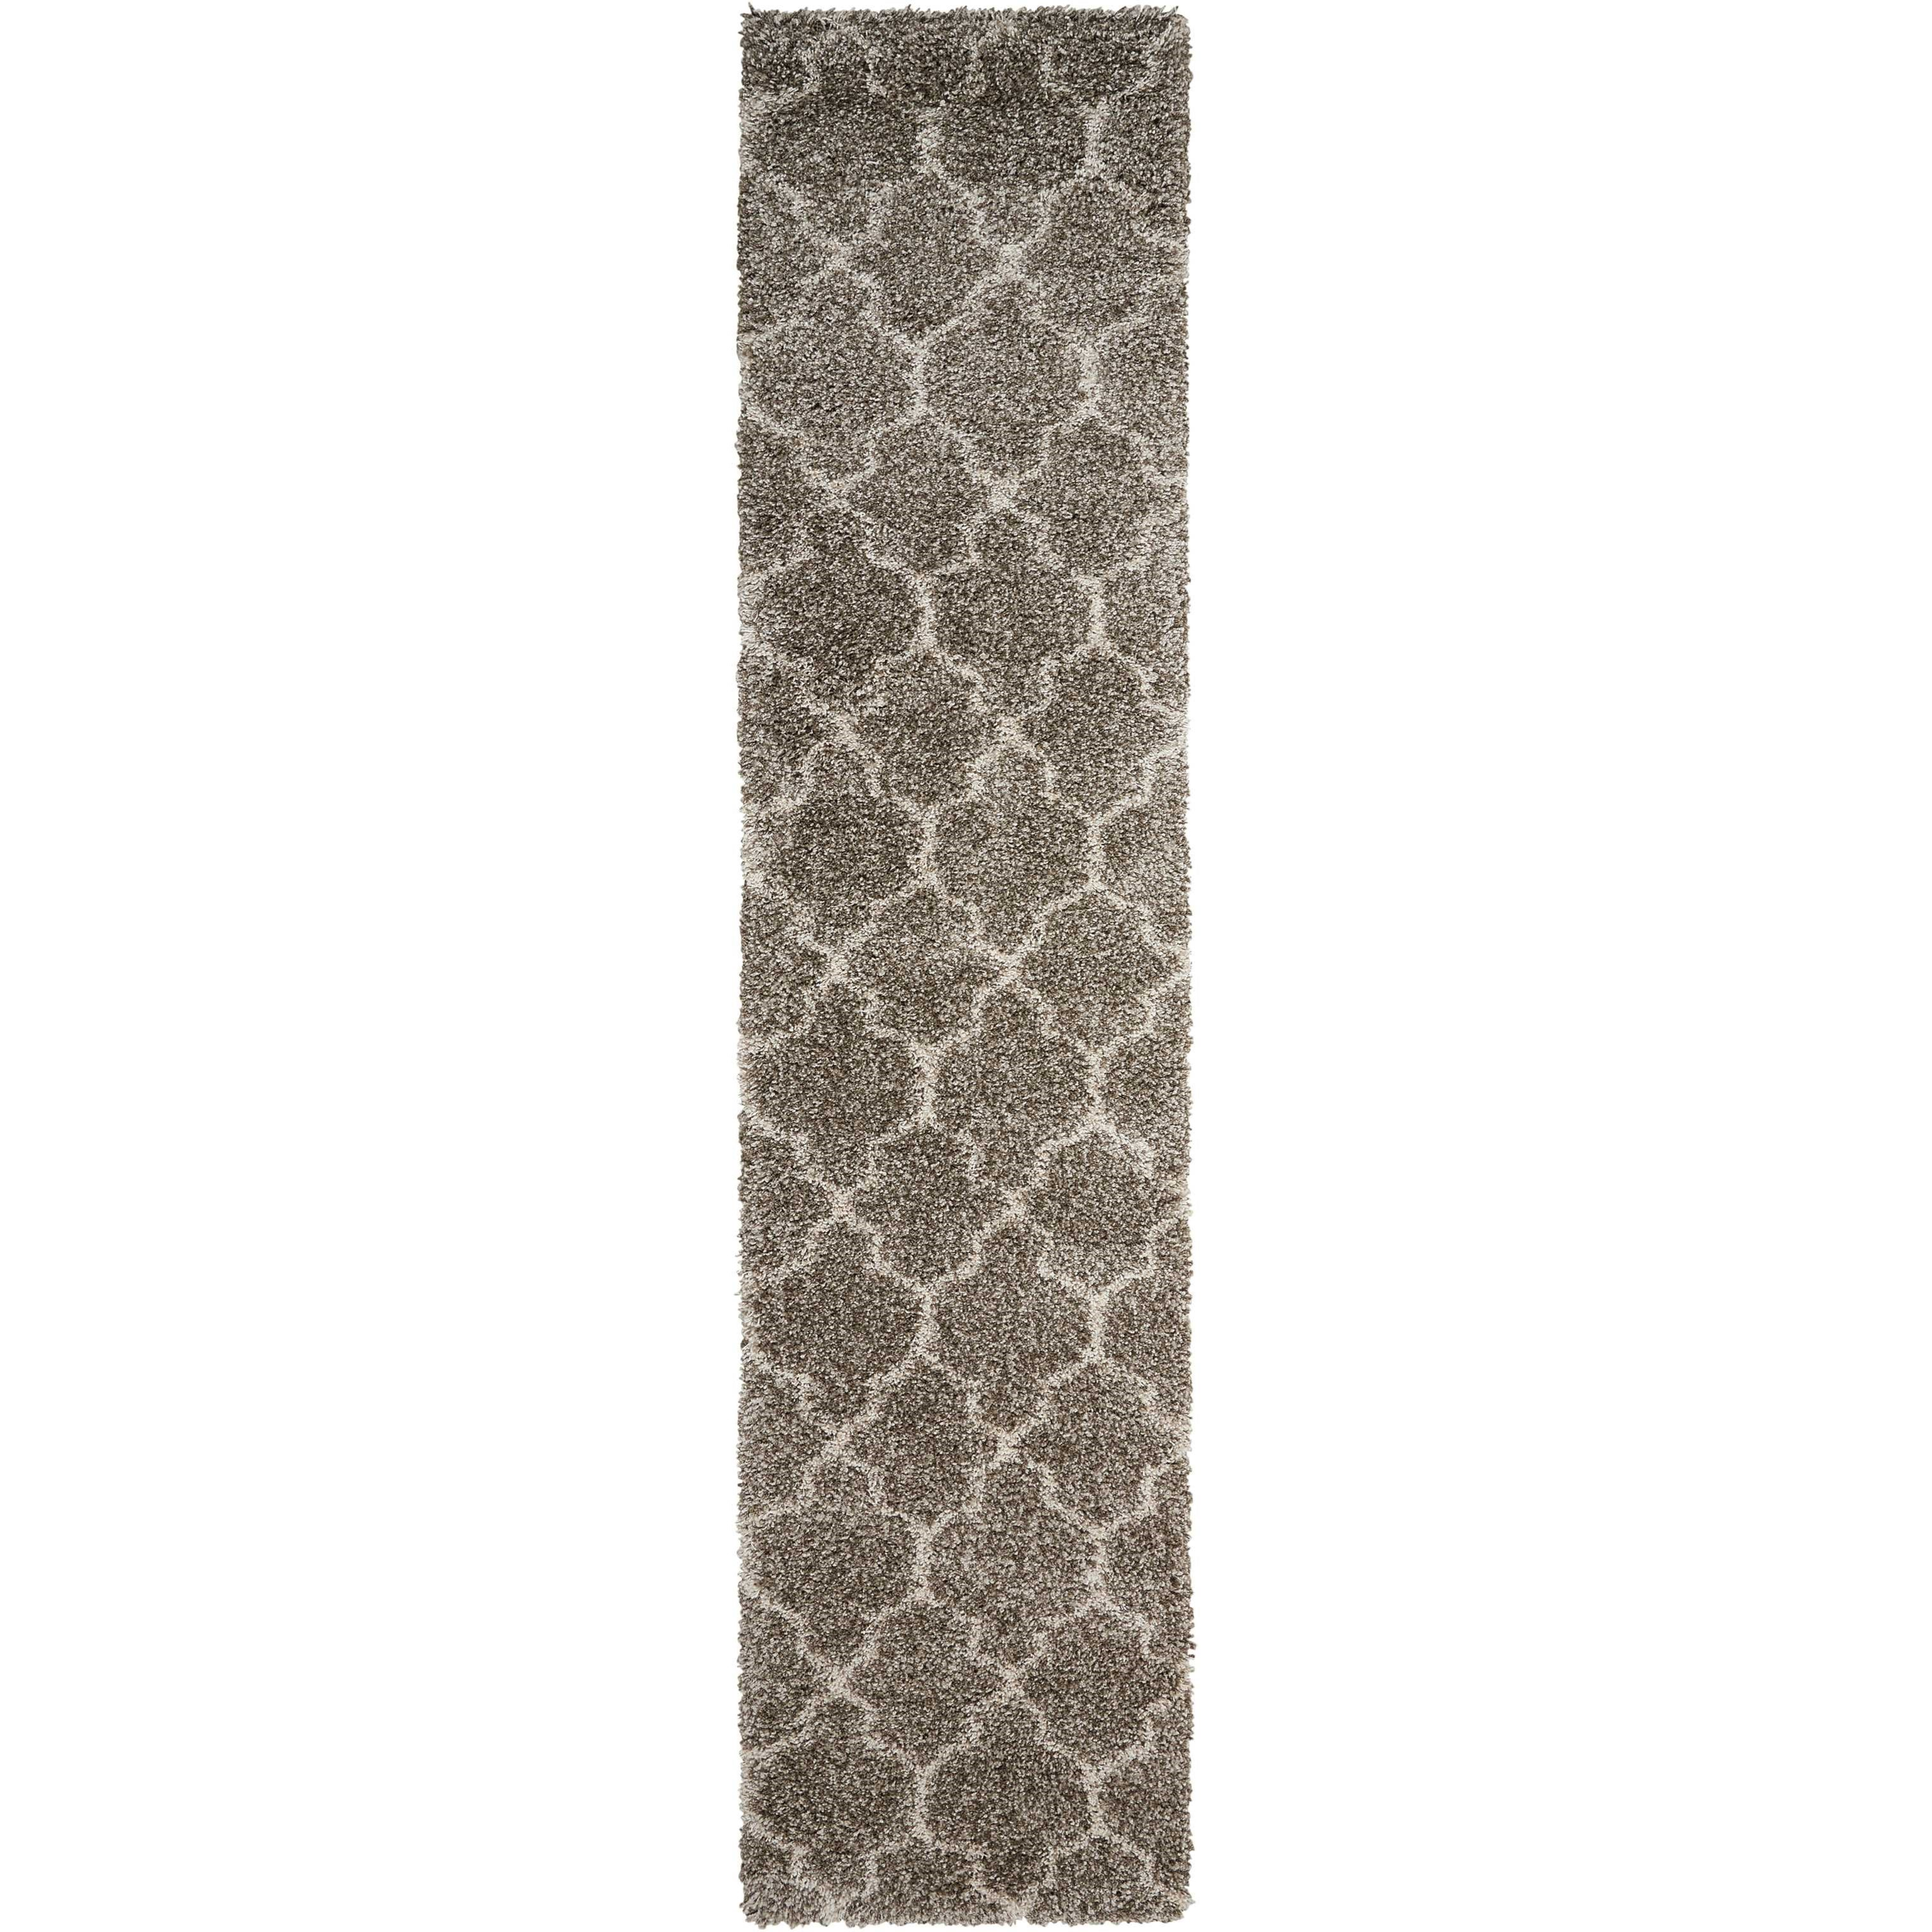 "Amore 2'2"" x 10' Stone Runner Rug by Nourison at Home Collections Furniture"